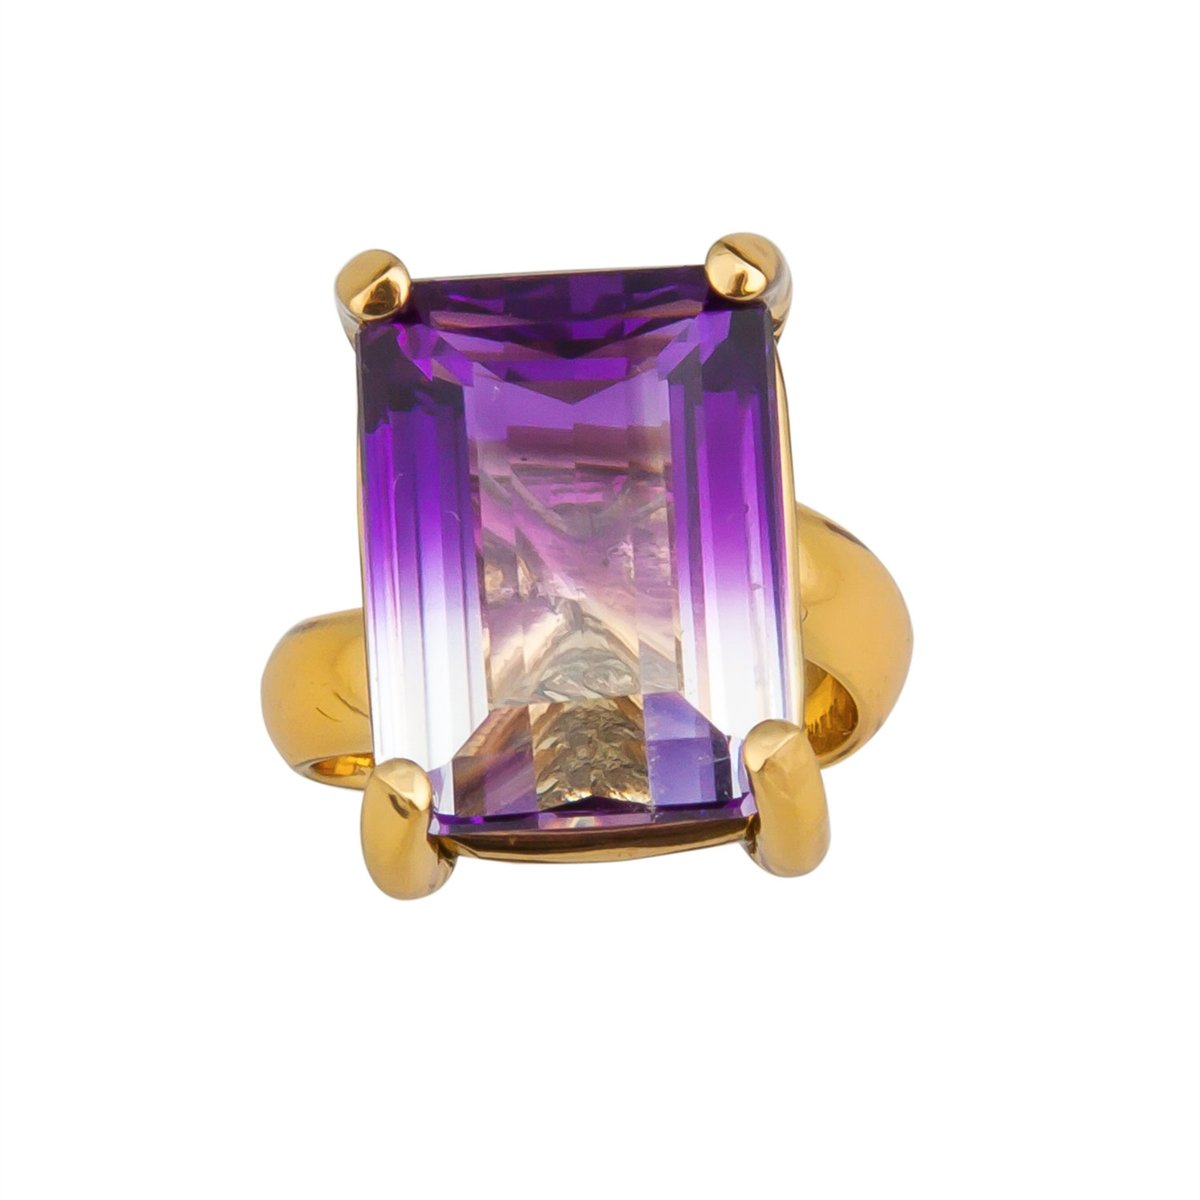 Alchemia Bi-Color Amethyst Prong Set Adjustable Ring | Charles Albert Jewelry